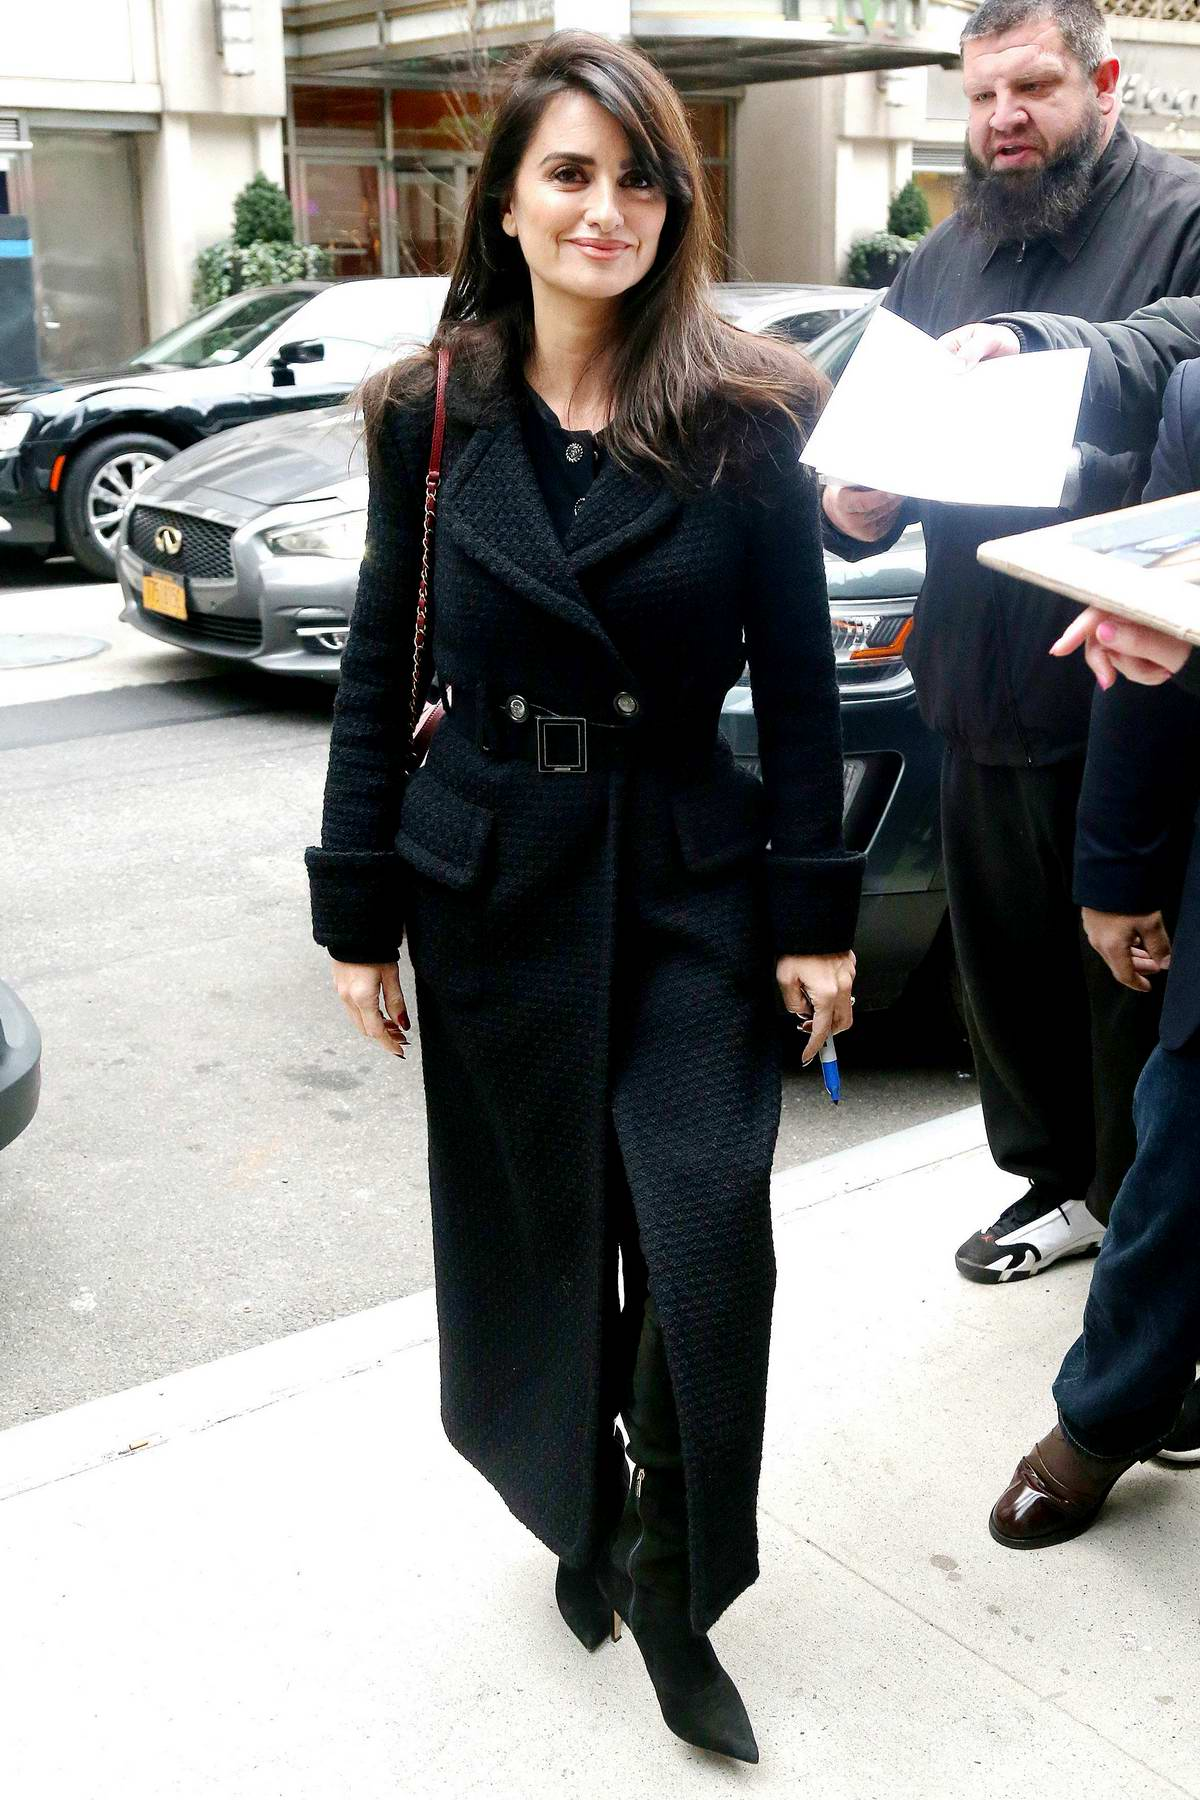 Penelope Cruz looks stunning in all black as she steps out in New York City